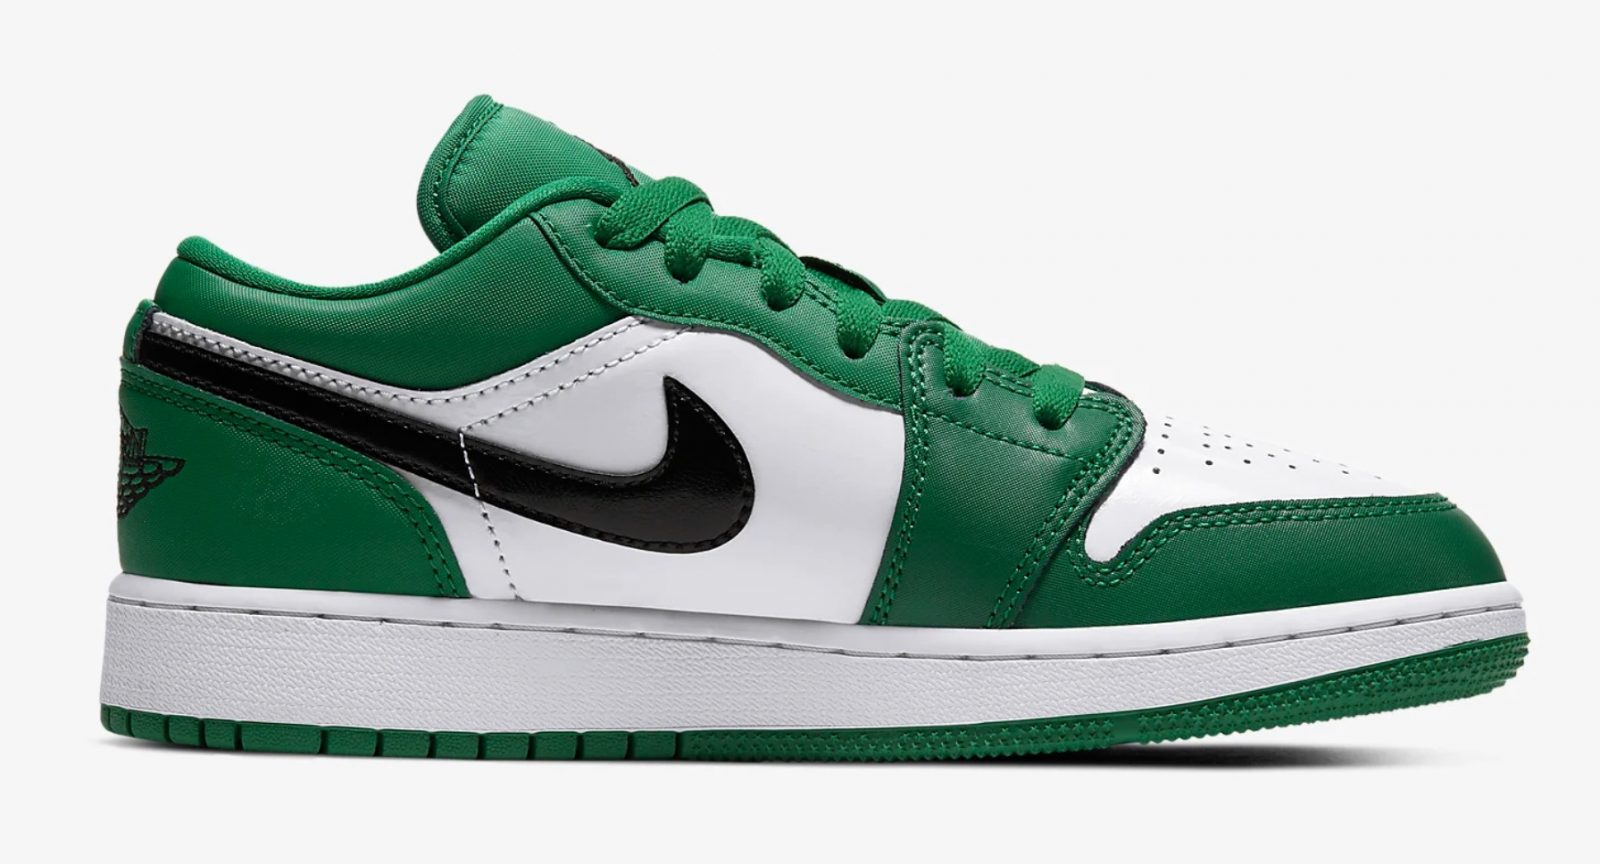 Air Jordan 1 Low Pine Green 553560-301 right